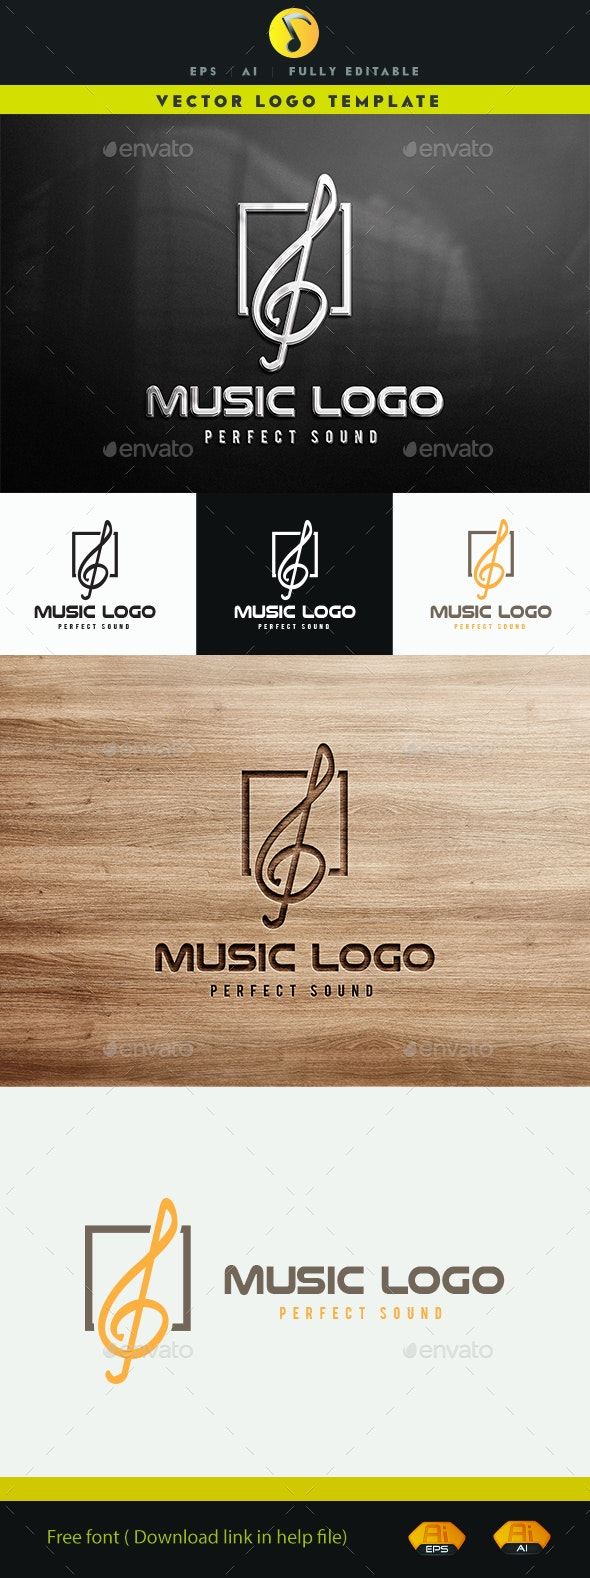 Old music book Logo Template for Your melody teaching Business Card